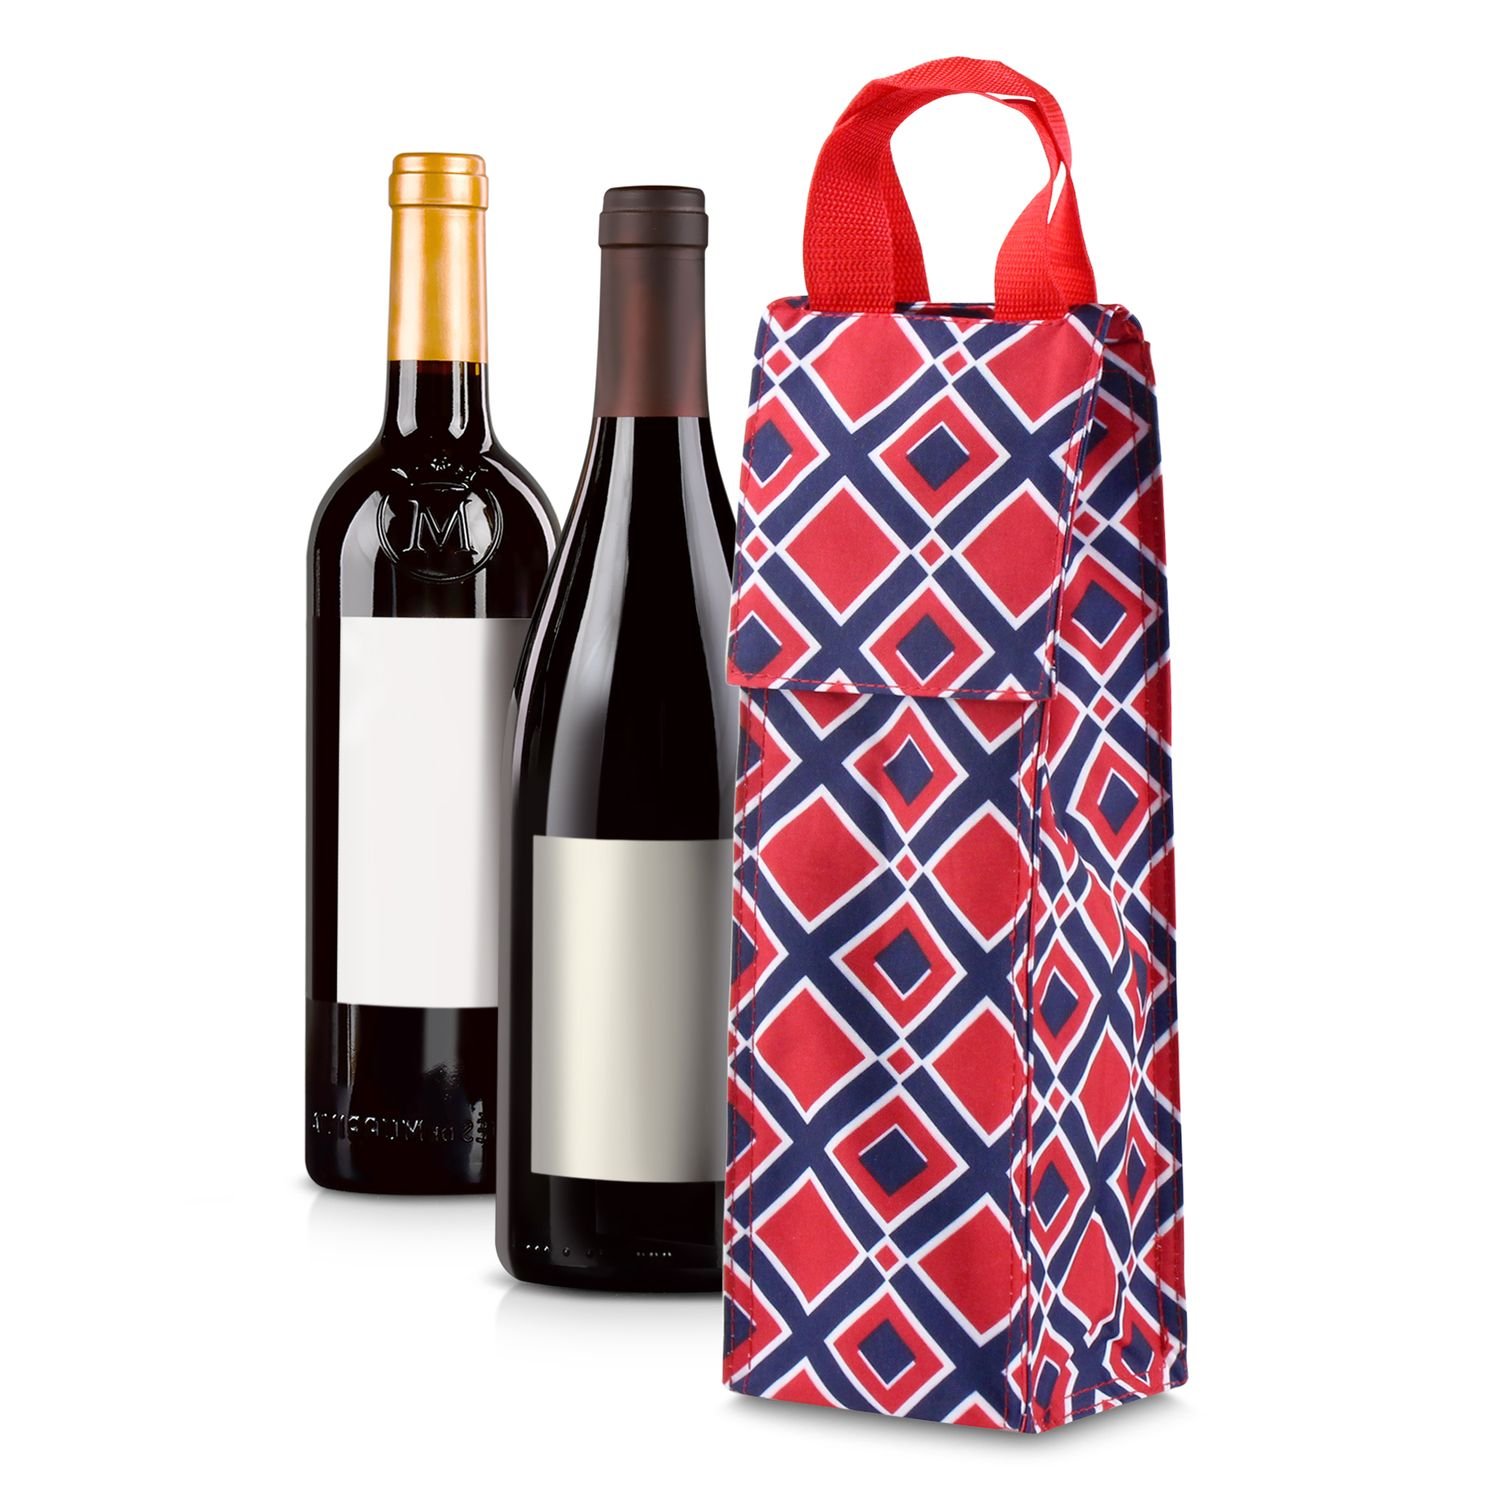 Wine Carrier Bag by Zodaca Thermal Insulated Lightweight Wine Bottle Tote Carrying Case Whisky Glass Bottle Carry Holder Bag for Travel Party Gift - Red/Navy Times Square